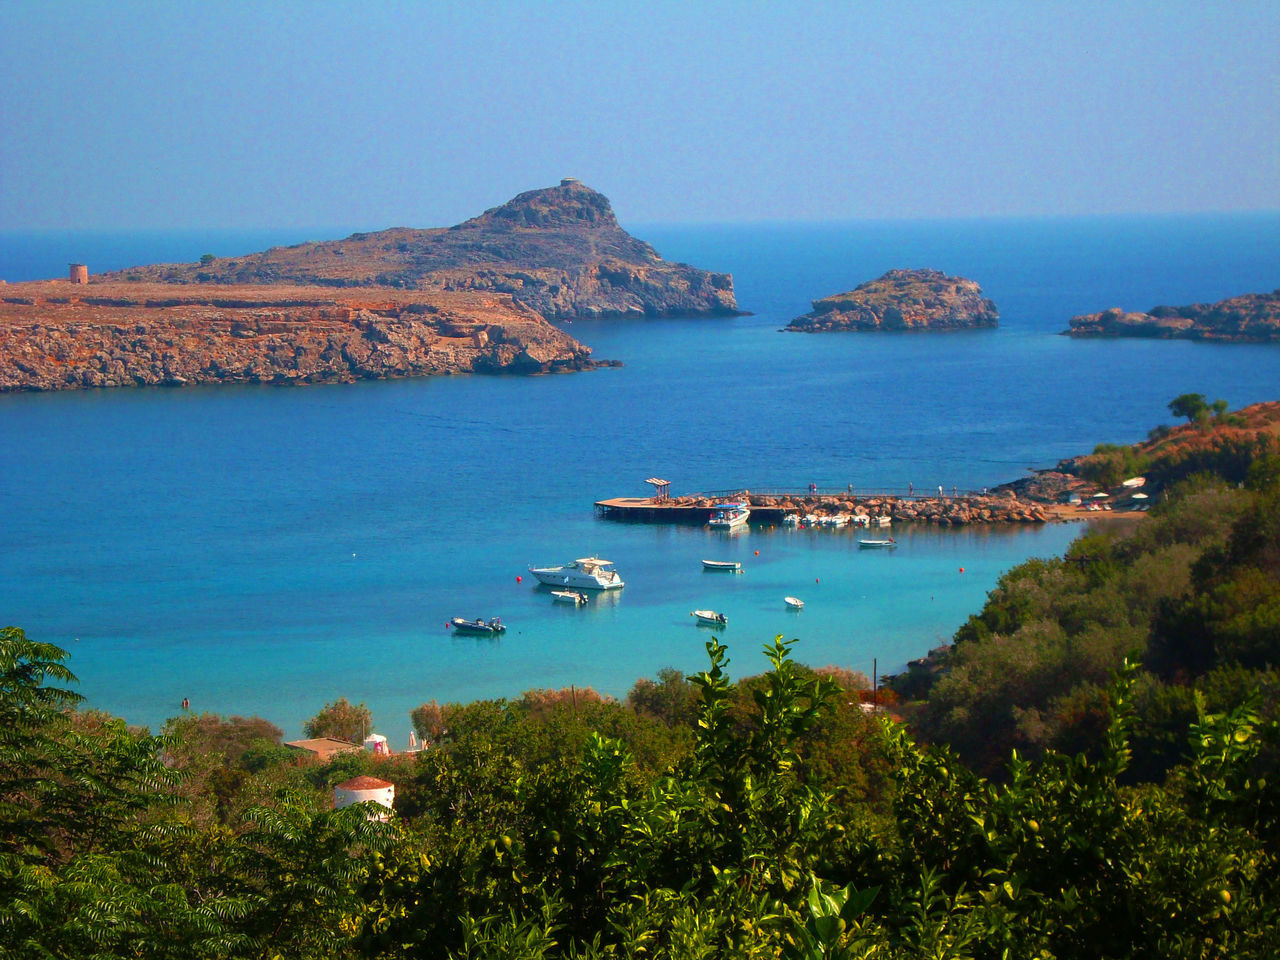 Photography Landscape Landscape_photography Admiring The View Landscape_photography Love Nature Photography Taking Photos Tranquil Scene Beauty In Nature Scenics Seascape Lindos Greece Saint Paul Lindos Panoramic View Beachscape Seascape Naturelover Sea And Sky